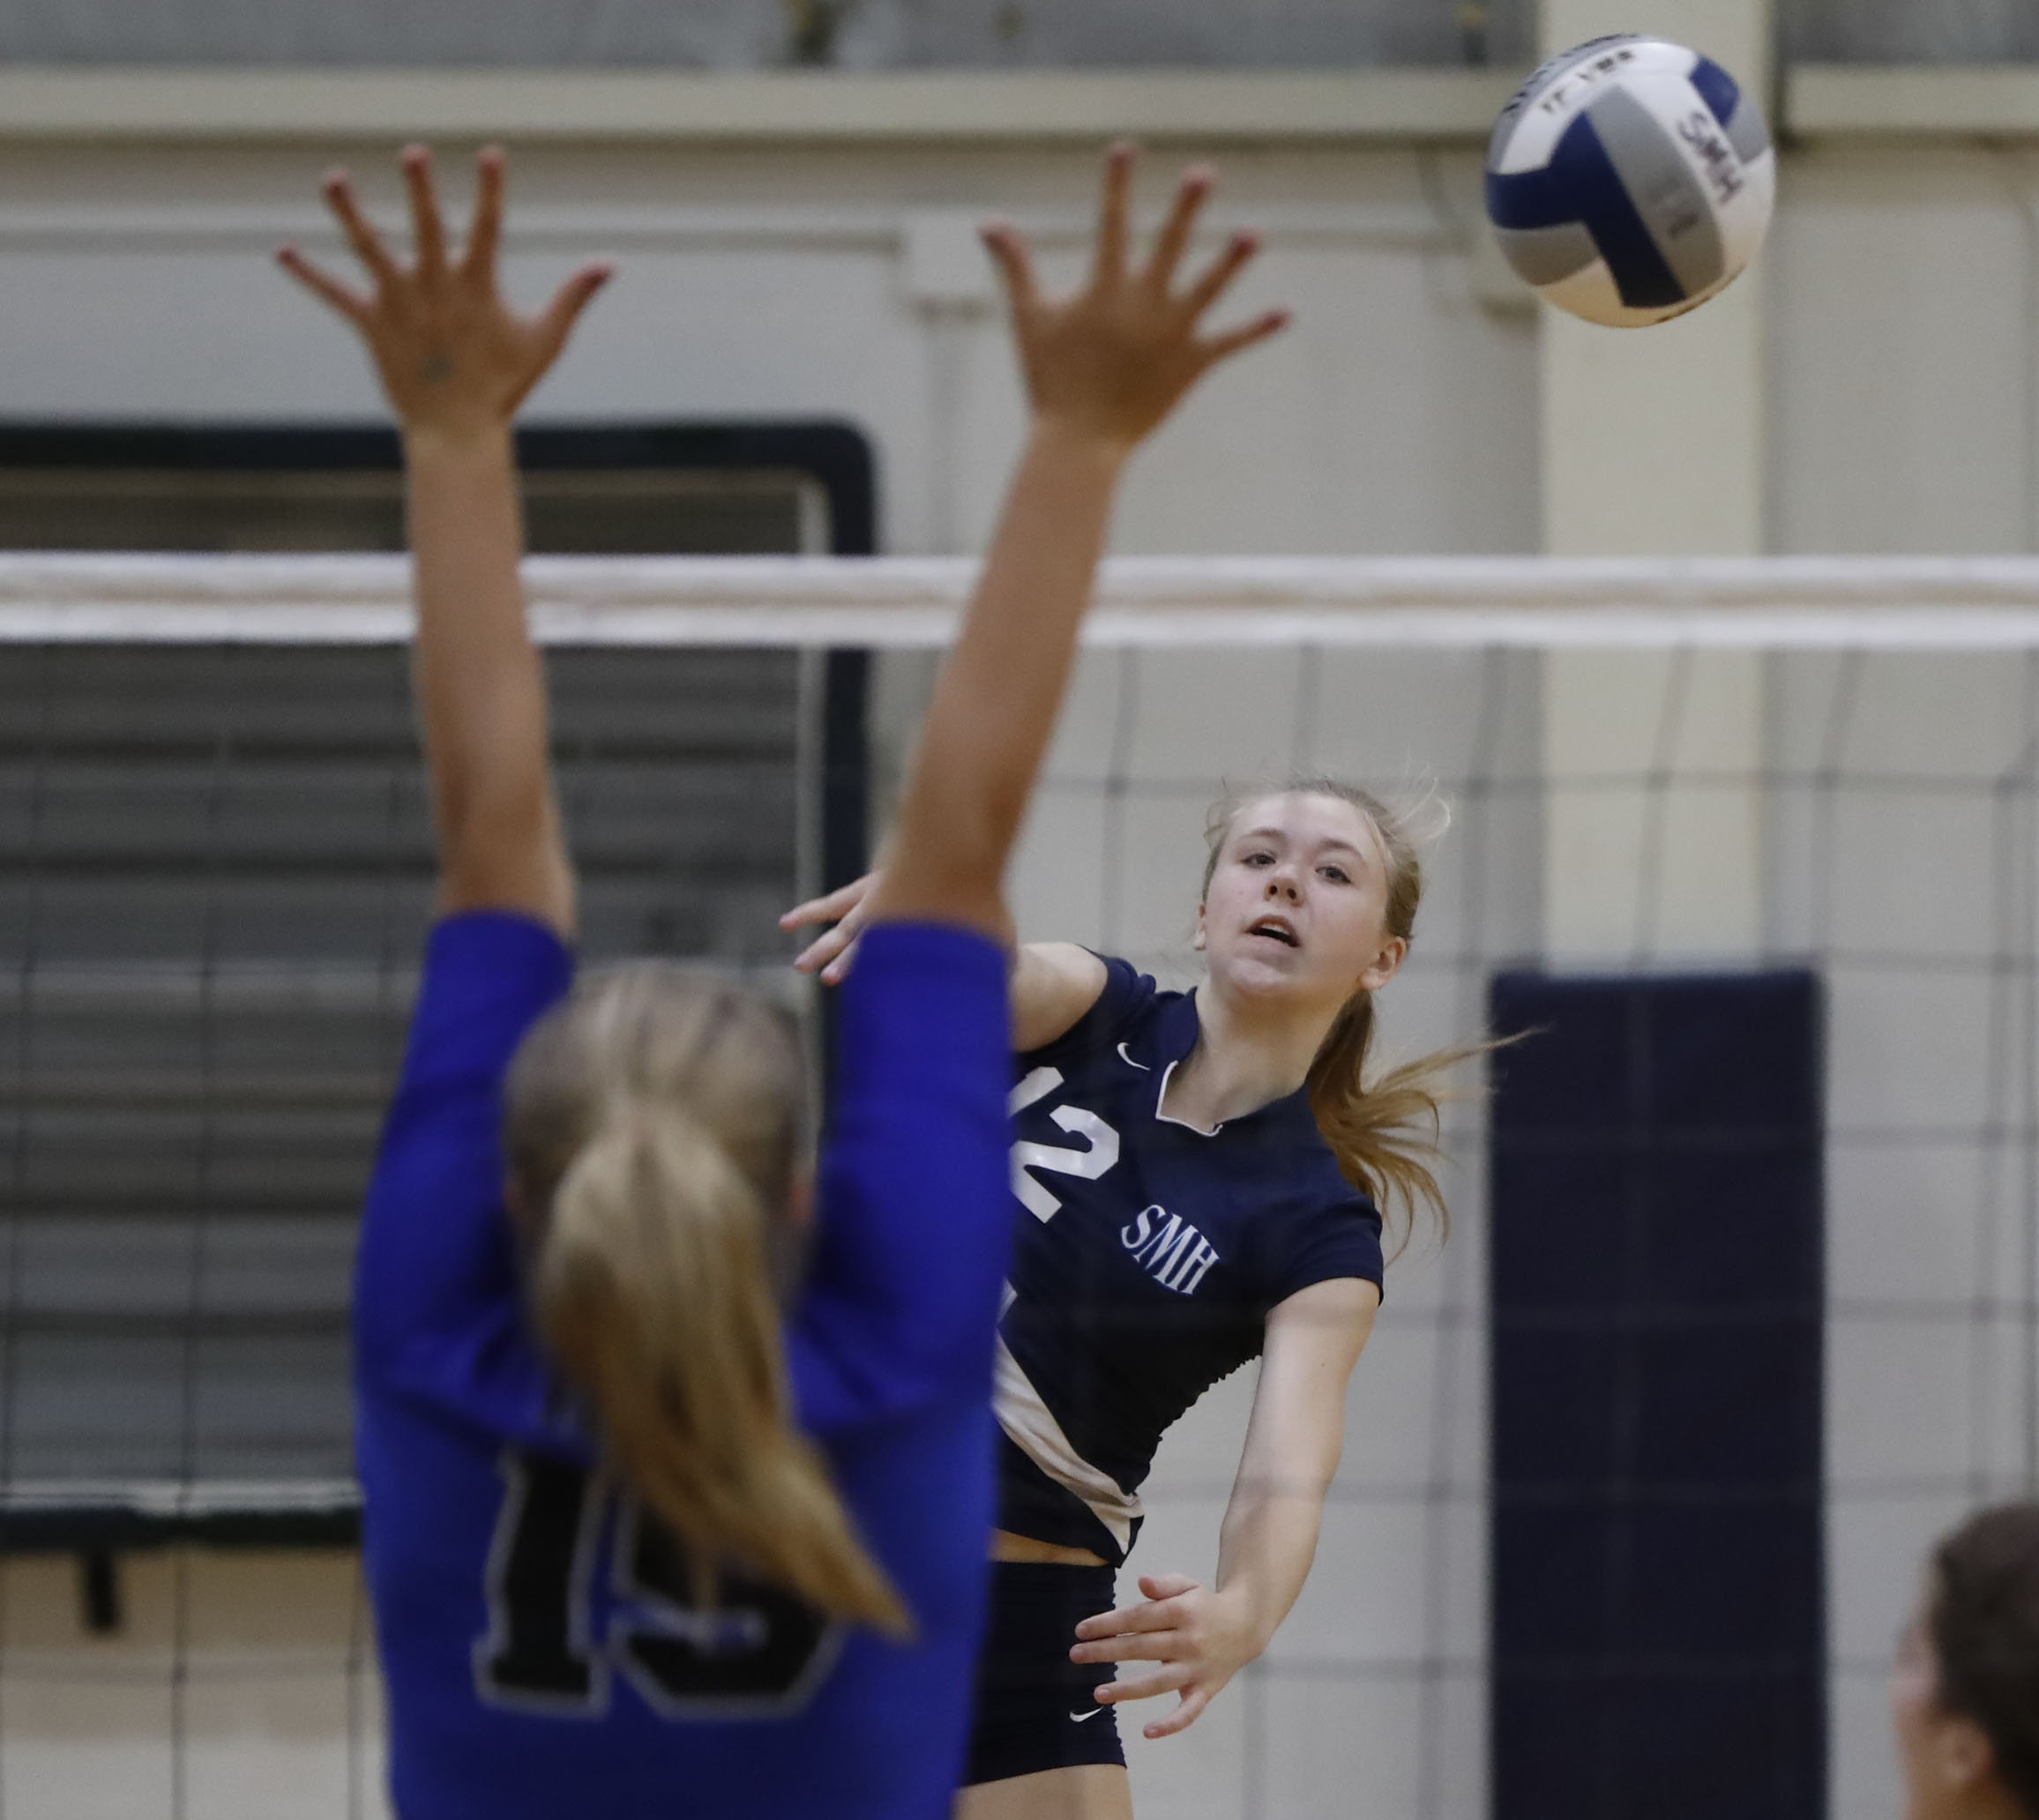 St. Mary's won its own invitational by defeating Eden in the championship match with the help of  hits like this by Summer Slade.